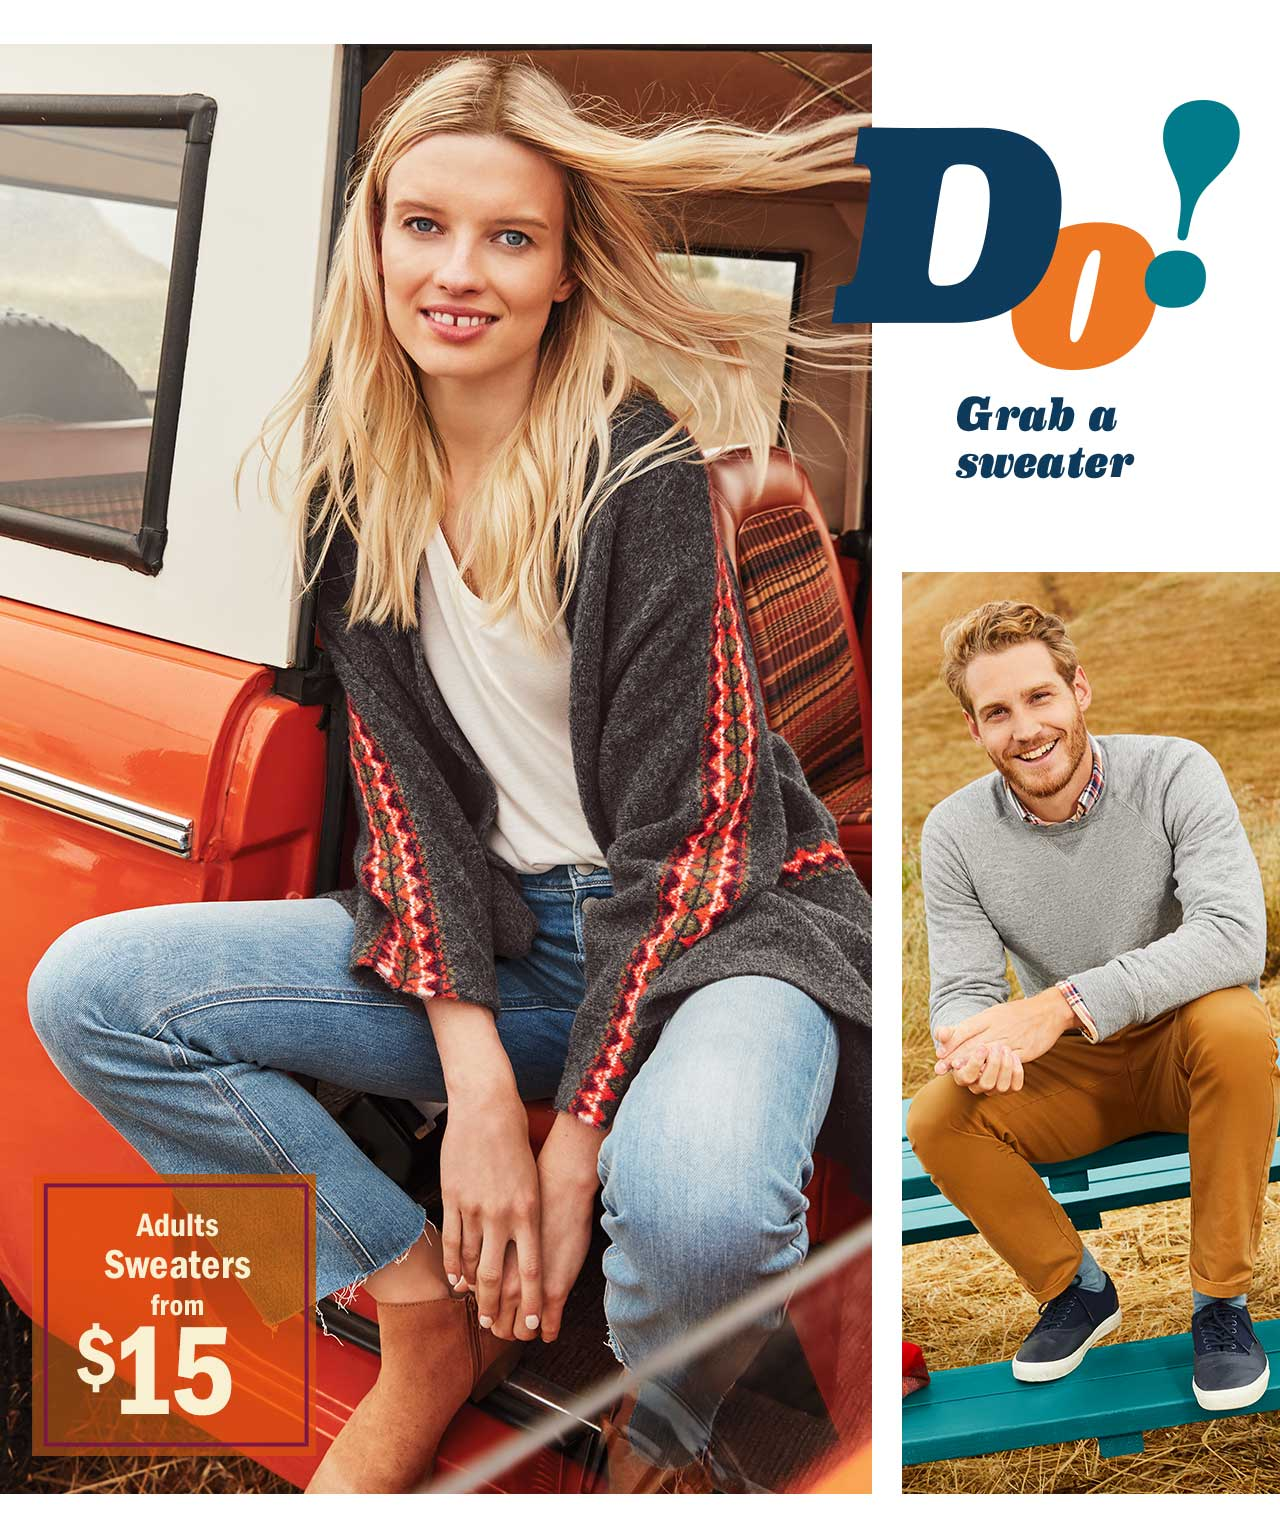 Do! Grab a sweater | Adults Sweaters from $15